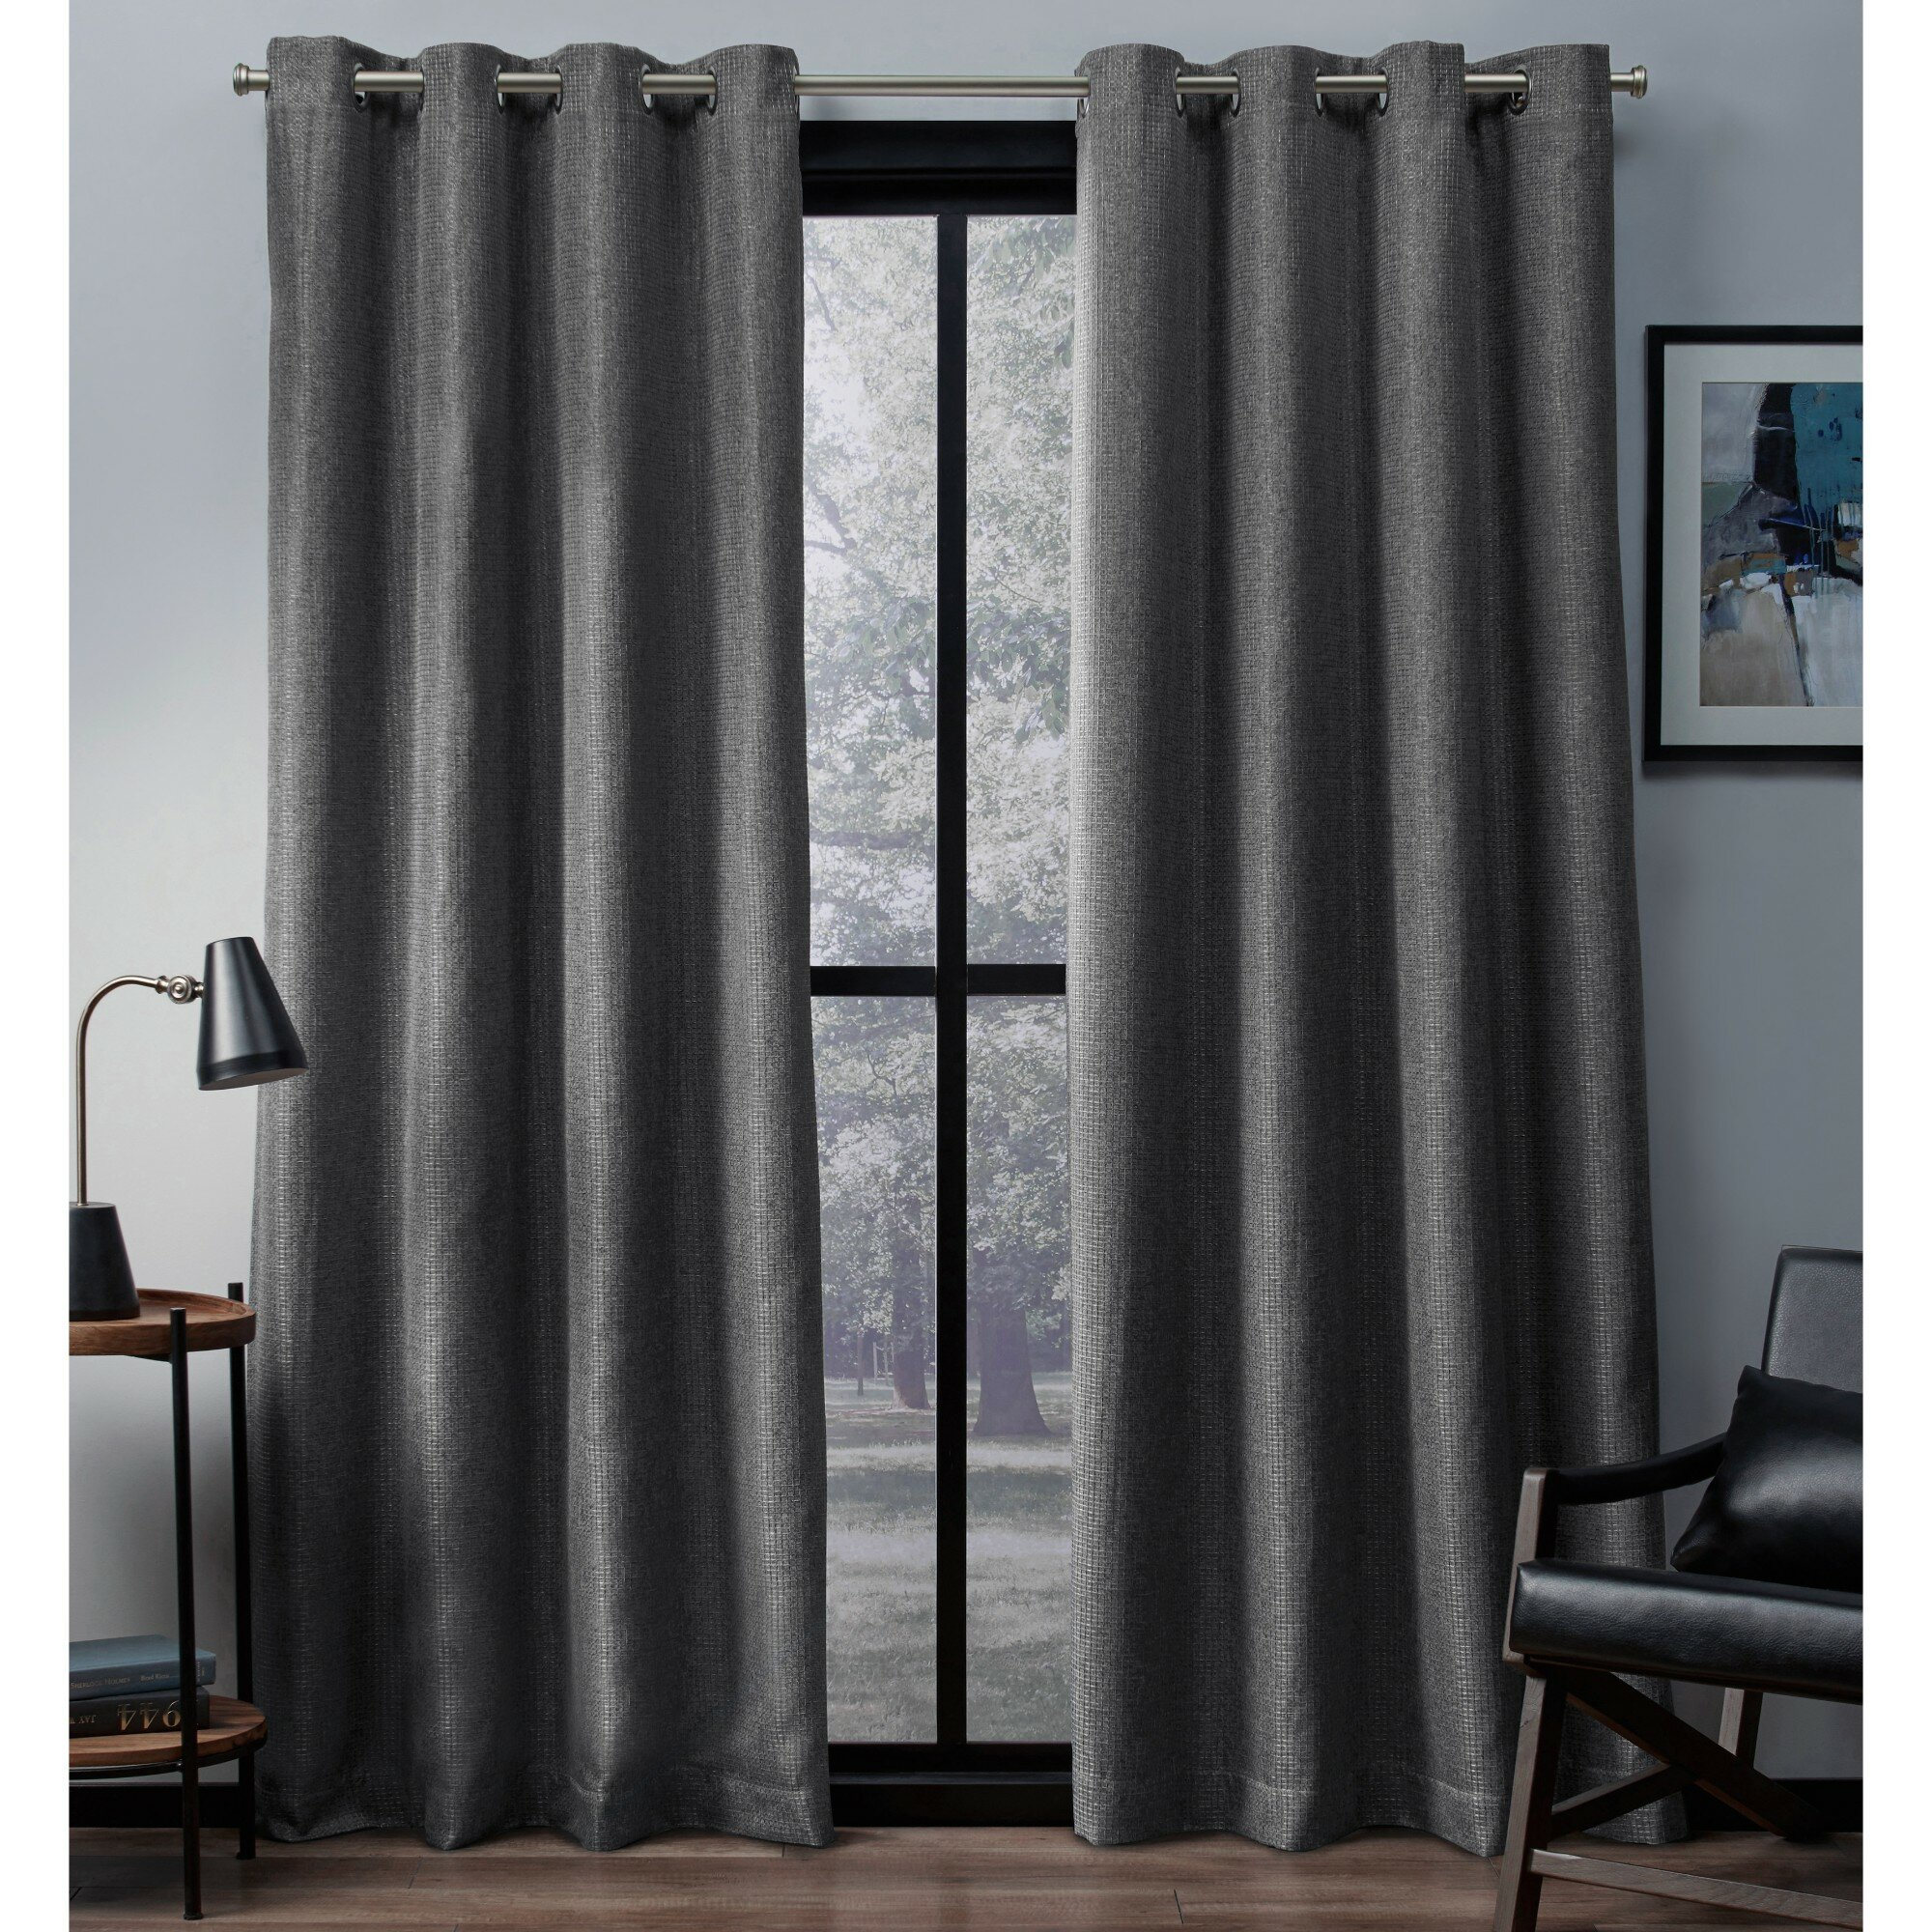 Dayse Solid Max Blackout Thermal Grommet Curtain Panels Throughout Cooper Textured Thermal Insulated Grommet Curtain Panels (View 17 of 20)